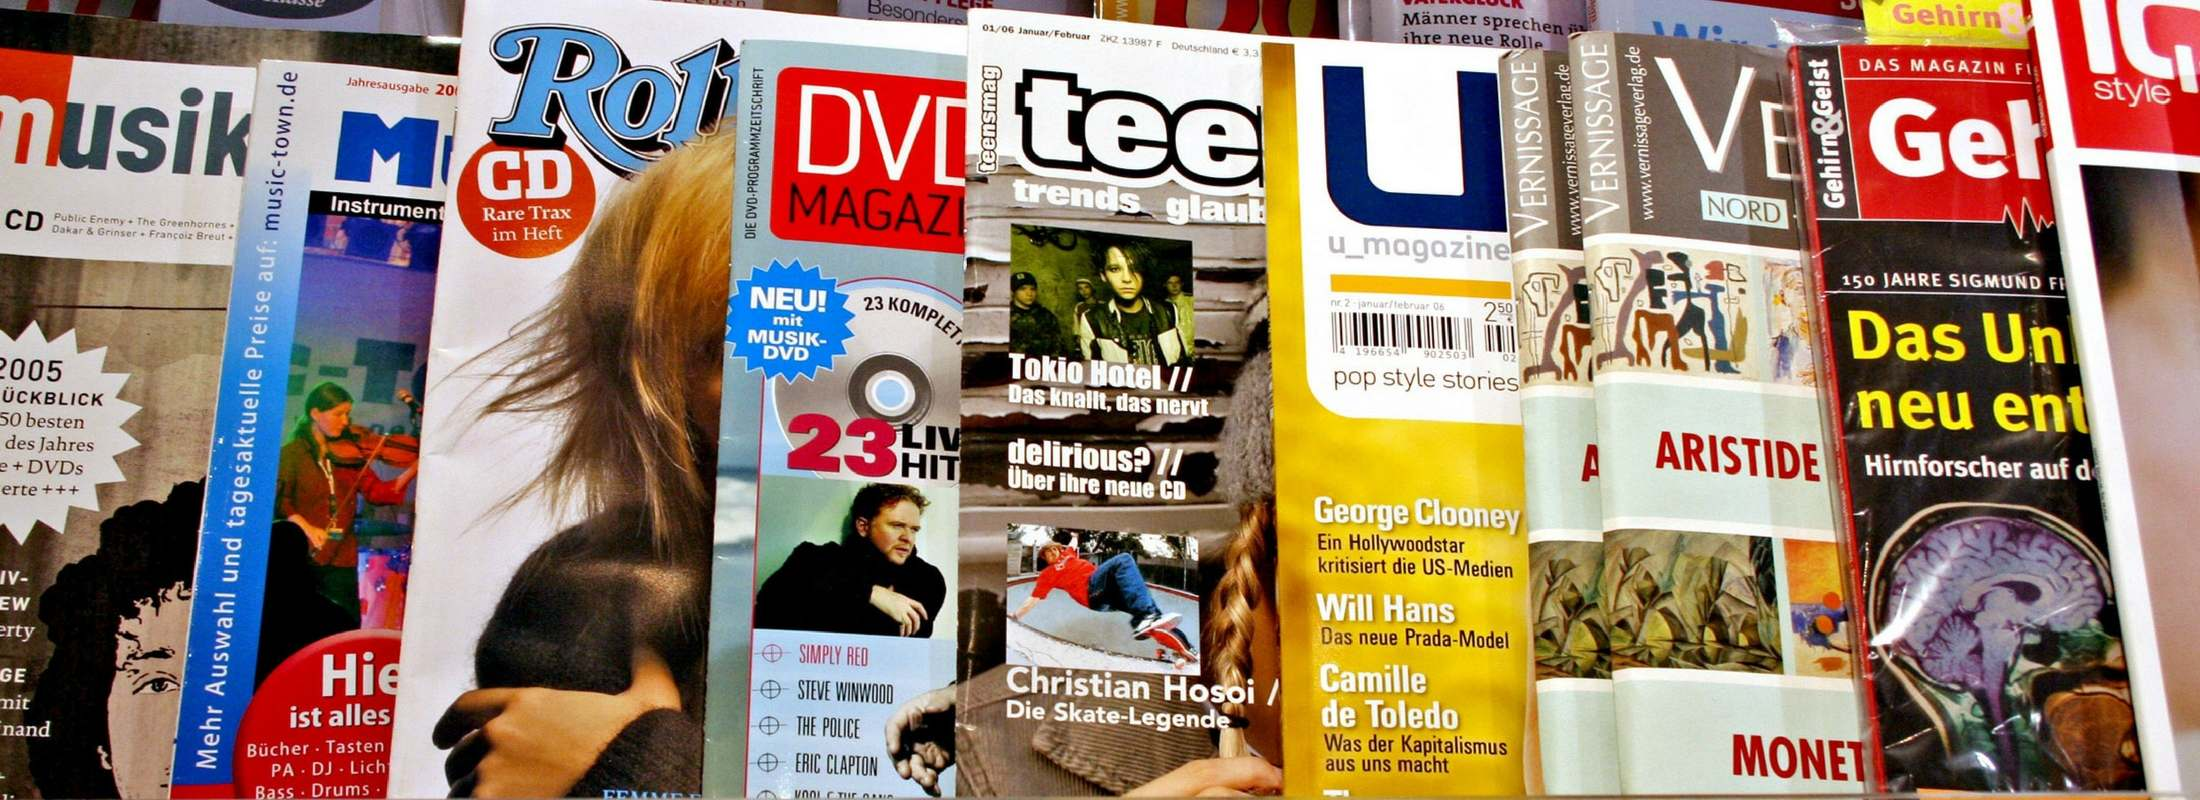 display of magazines for sale